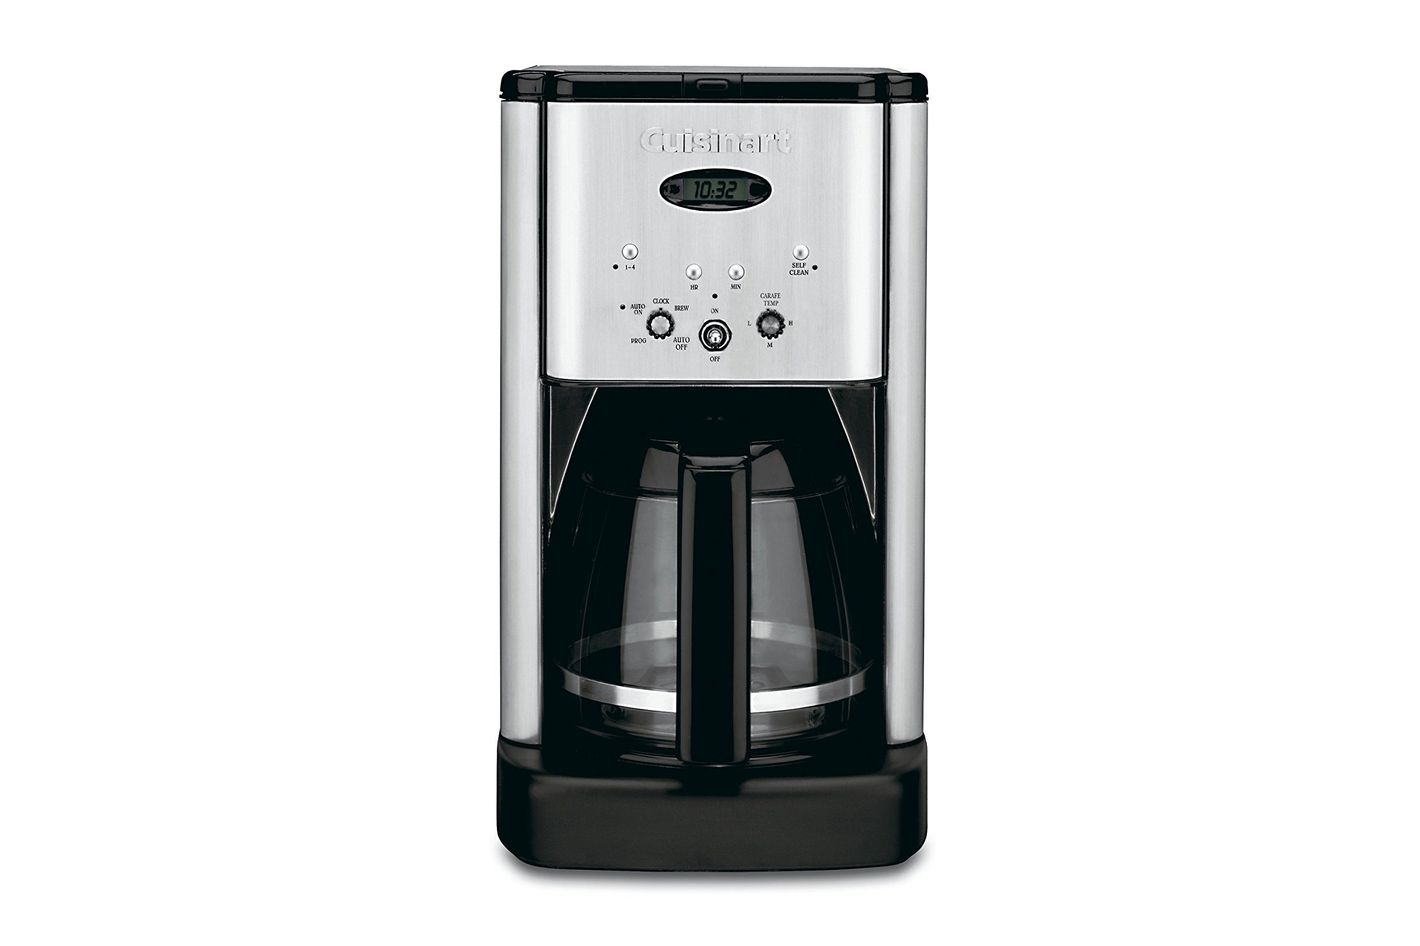 Cuisinart Coffee Maker With Grinder Not Working : 11 Best Coffee Makers for Brewing at Home